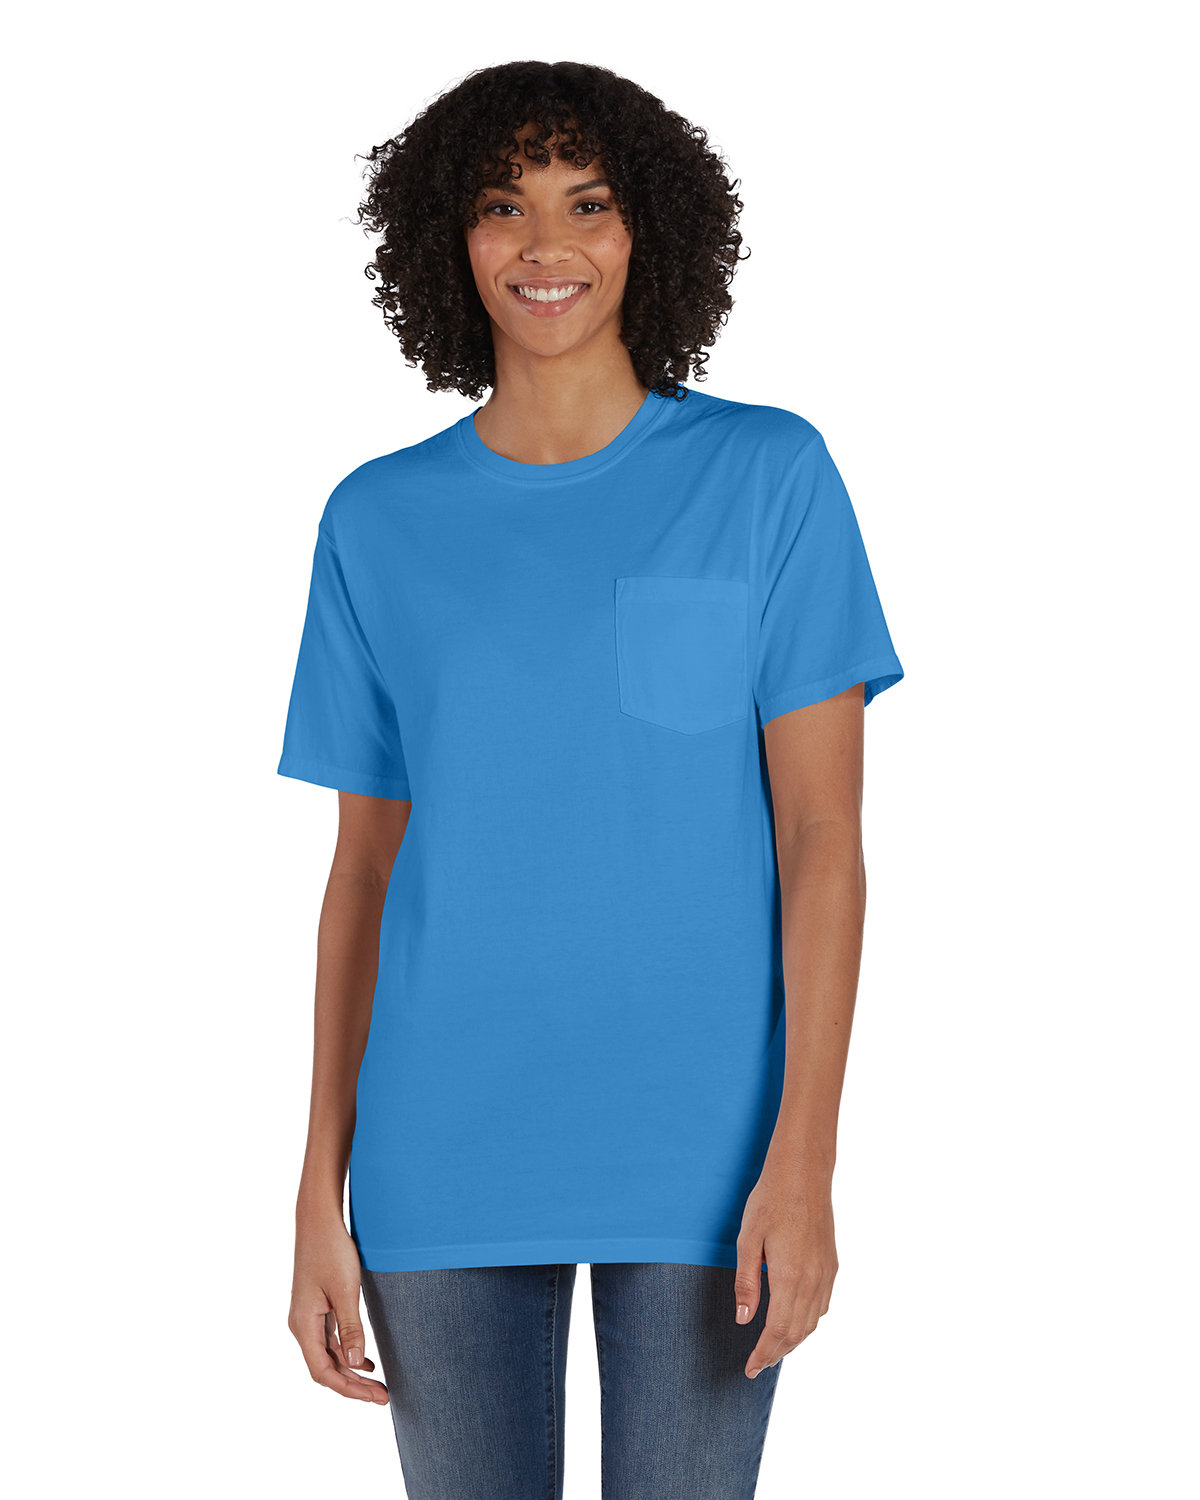 ComfortWash by Hanes Unisex Garment-Dyed T-Shirt with Pocket SUMMER SKY